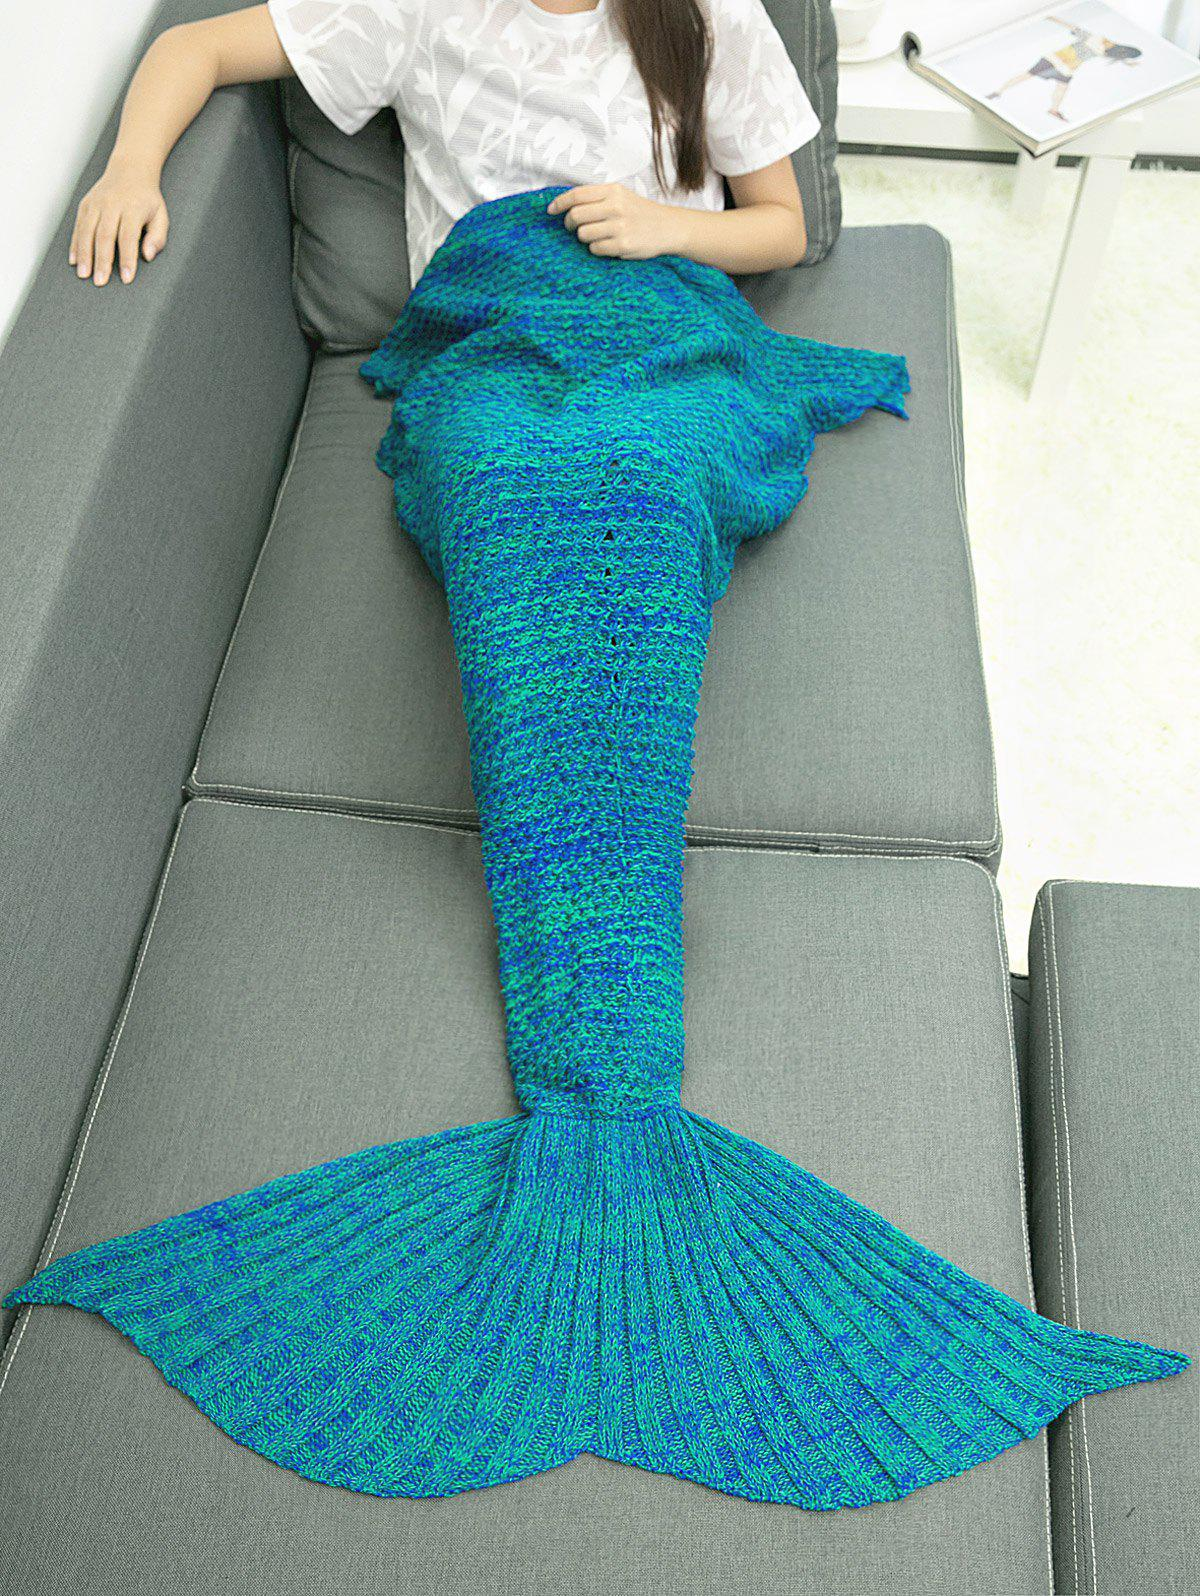 Crocheting Mermaid Blanket Throw microcontroller projects in c for the 8051